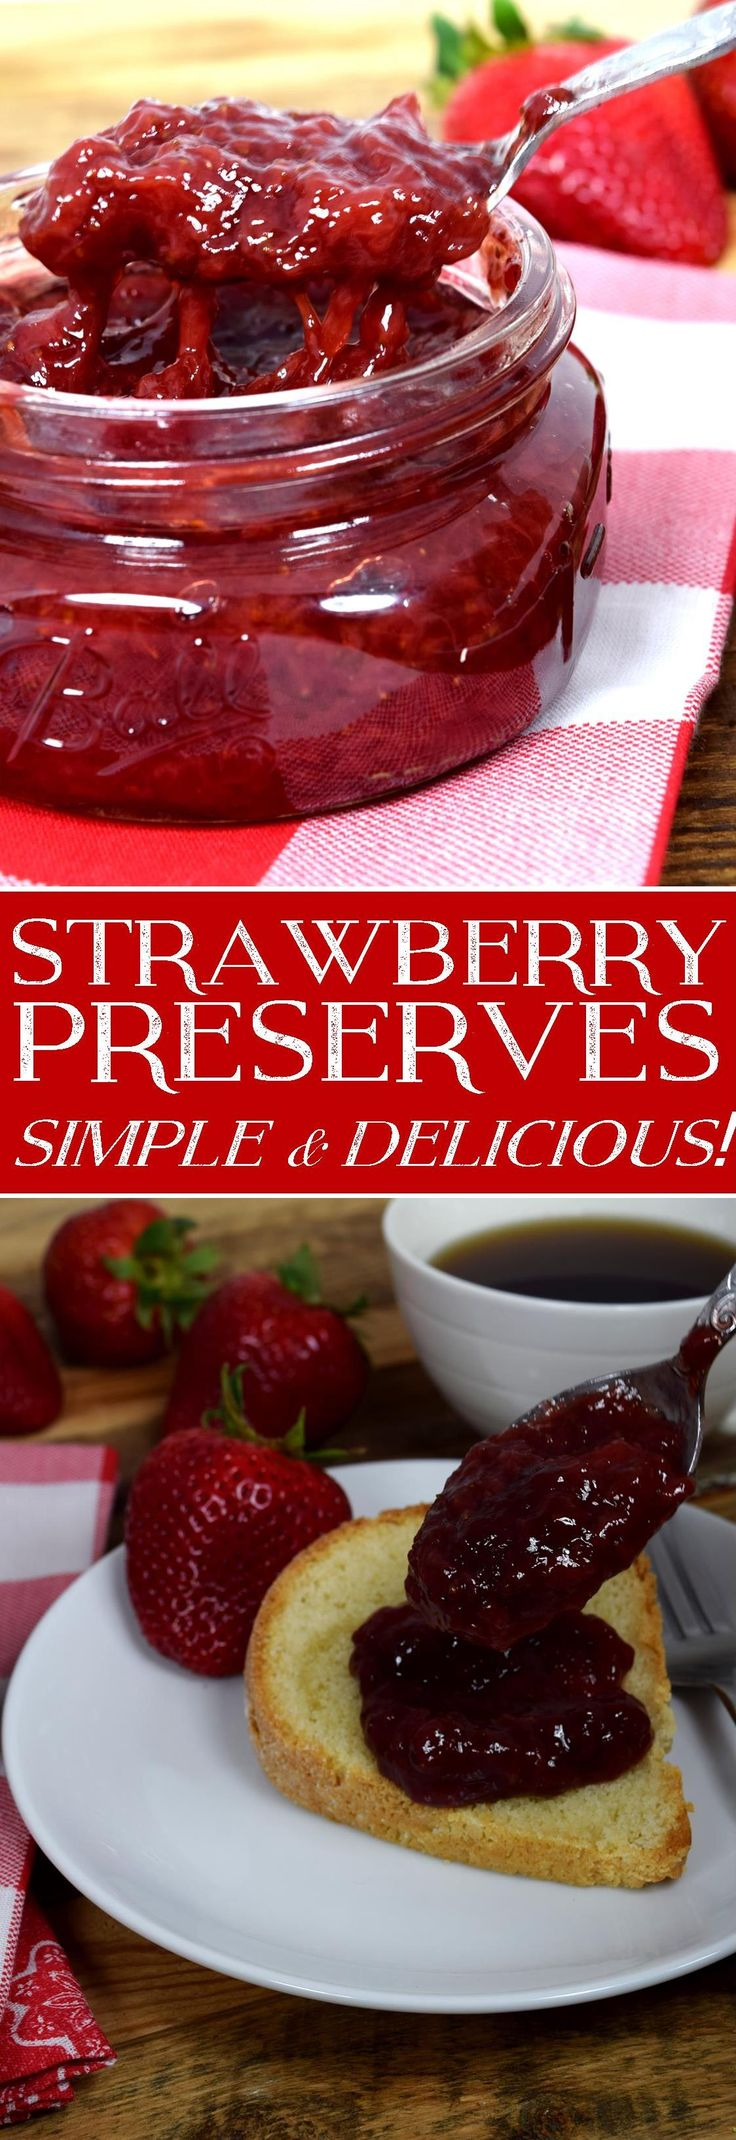 Strawberry Preserves - Simple & Delicious!